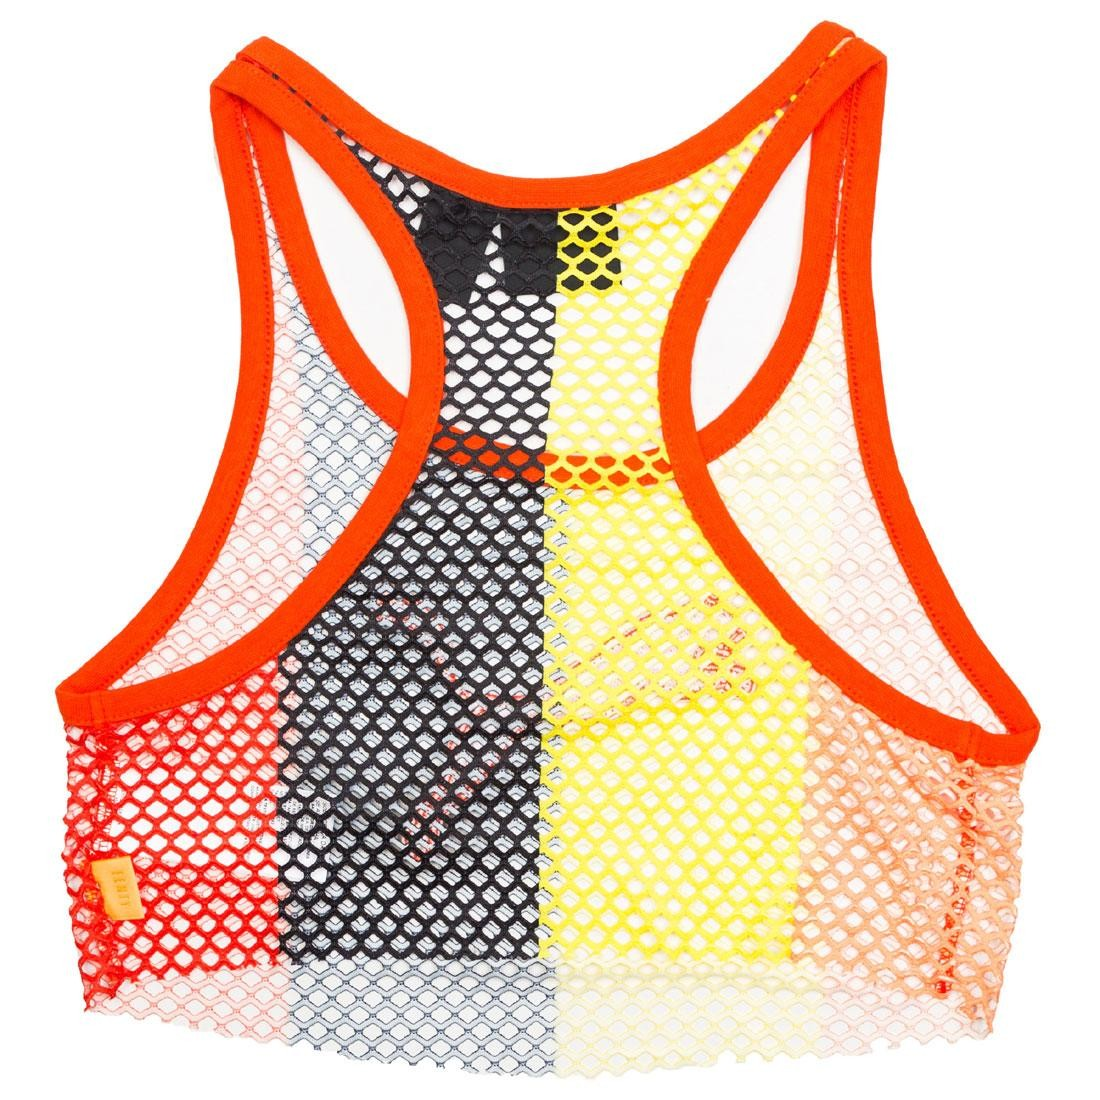 c4fad758e1f87 Puma x Fenty By Rihanna Women Mesh Cropped Tank Top (orange   pop)